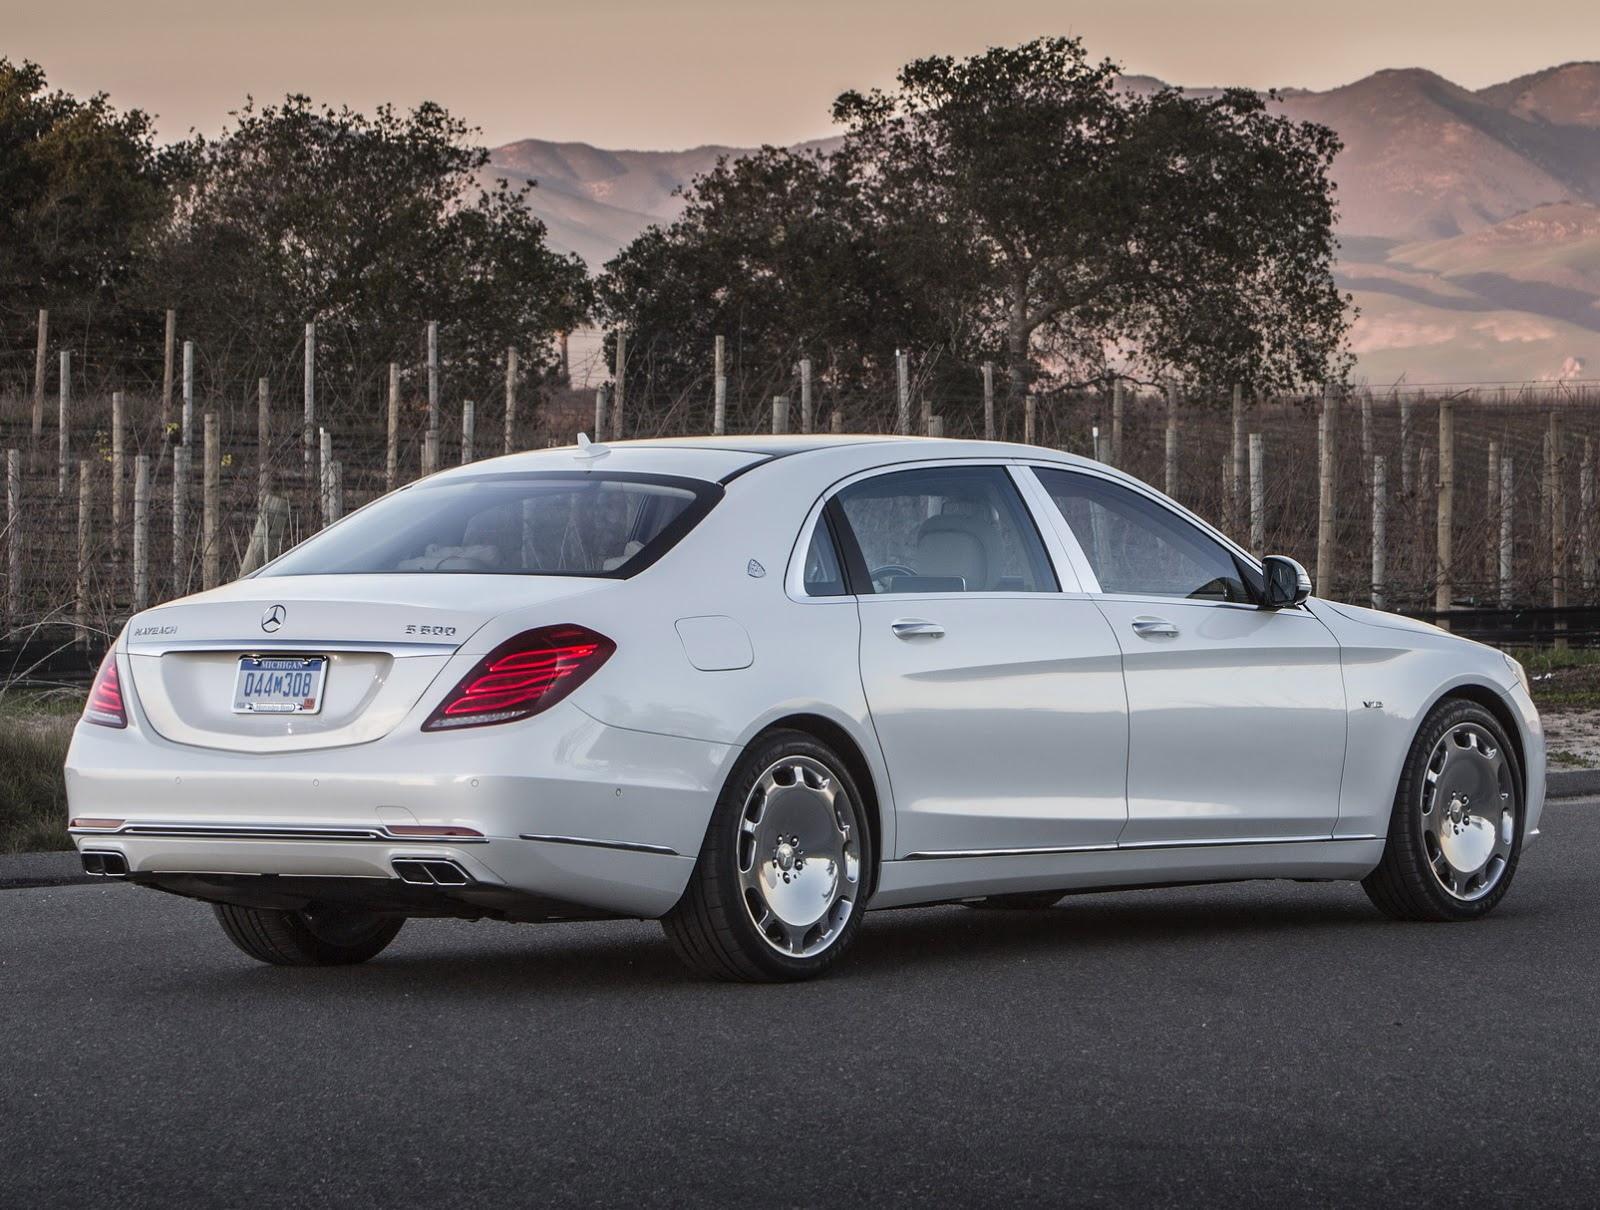 Mercedes Maybach S600 HD wallpapers download 1600x1210